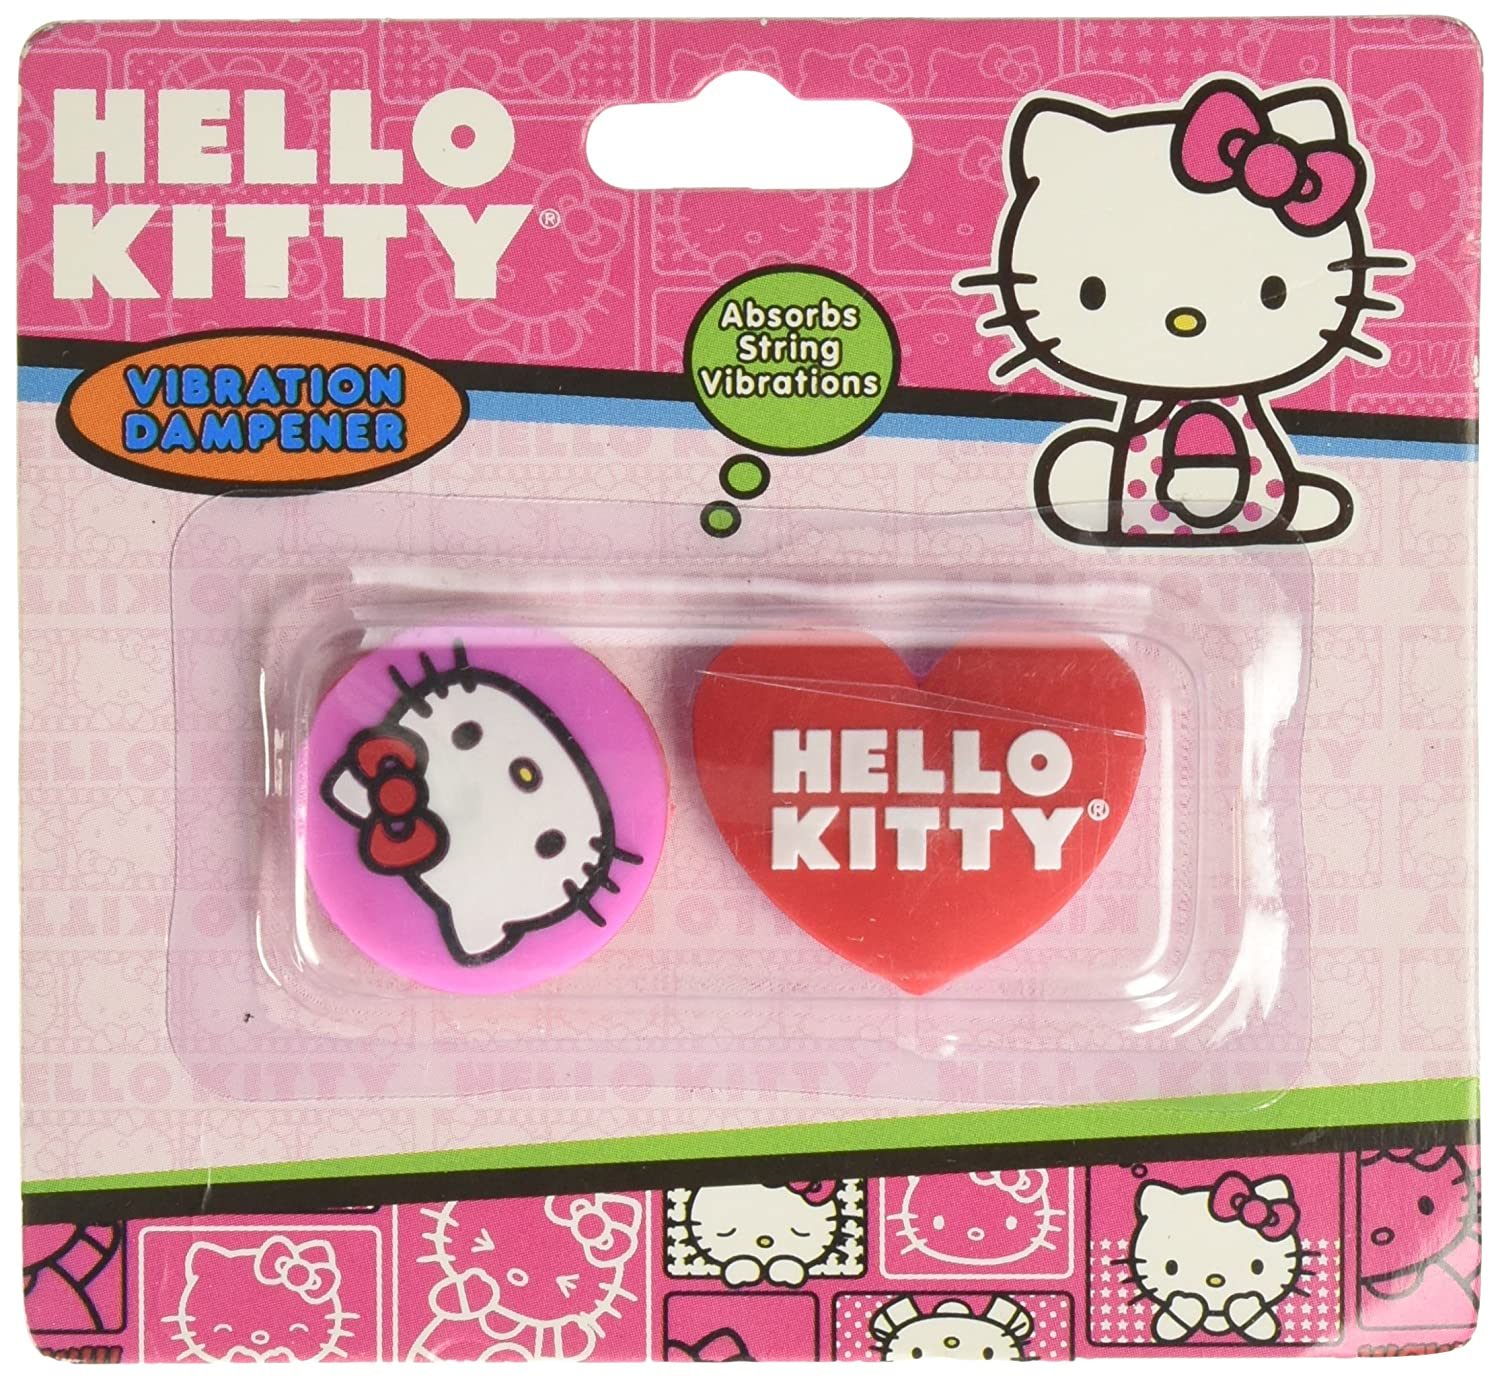 0e879fa92 Amazon.com : Hello Kitty Sports Face and Bow Vibration Dampener : Tennis  Vibration Dampeners : Sports & Outdoors